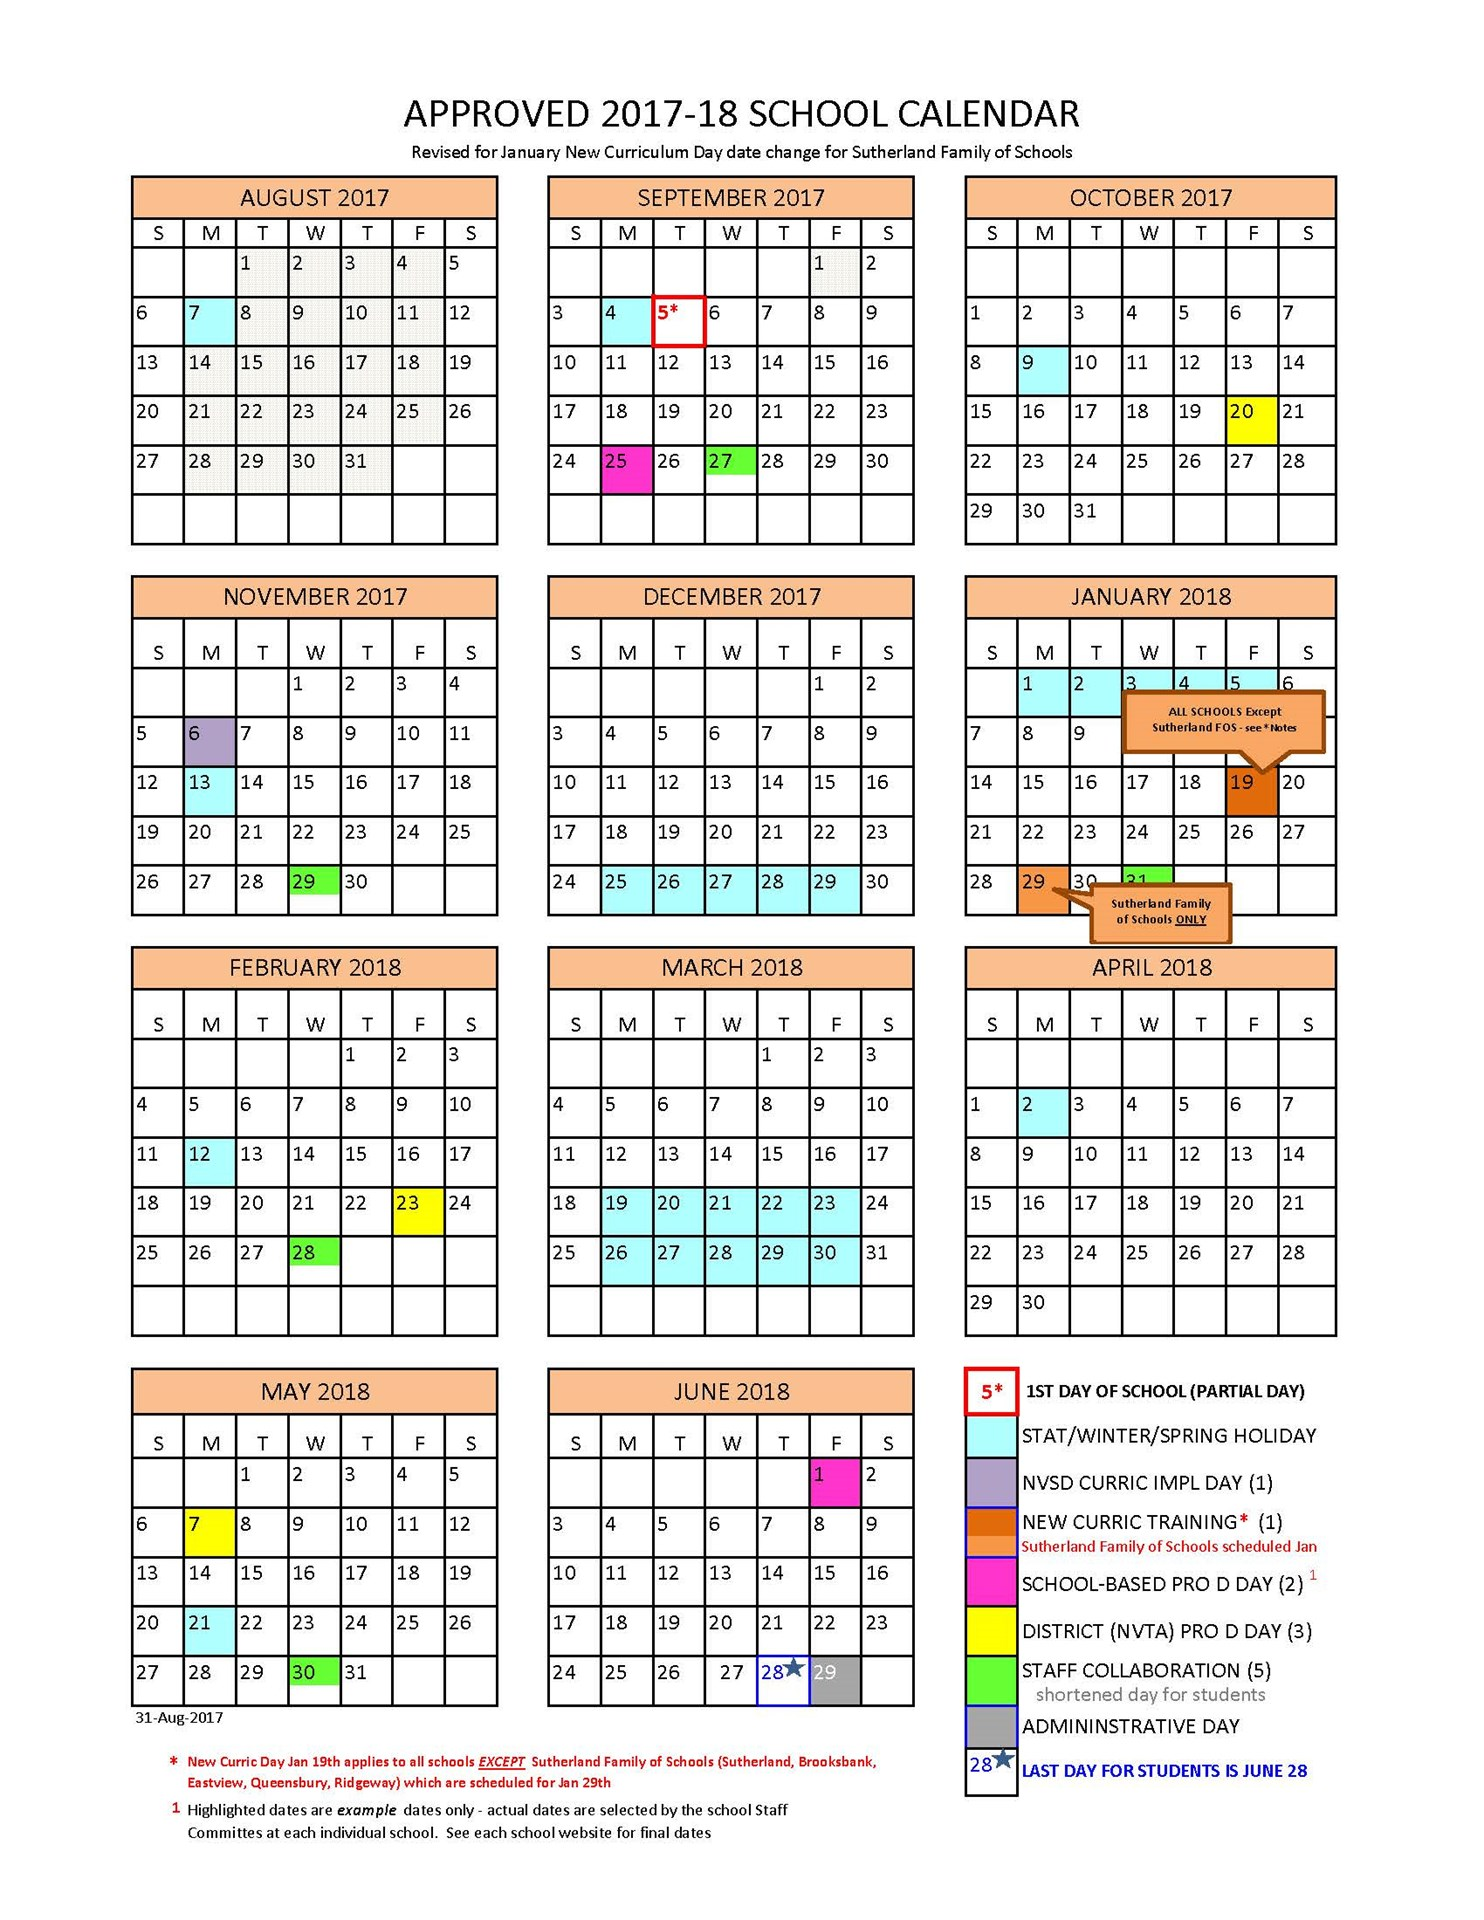 dating sites reviews in canada 2017 calendar printable